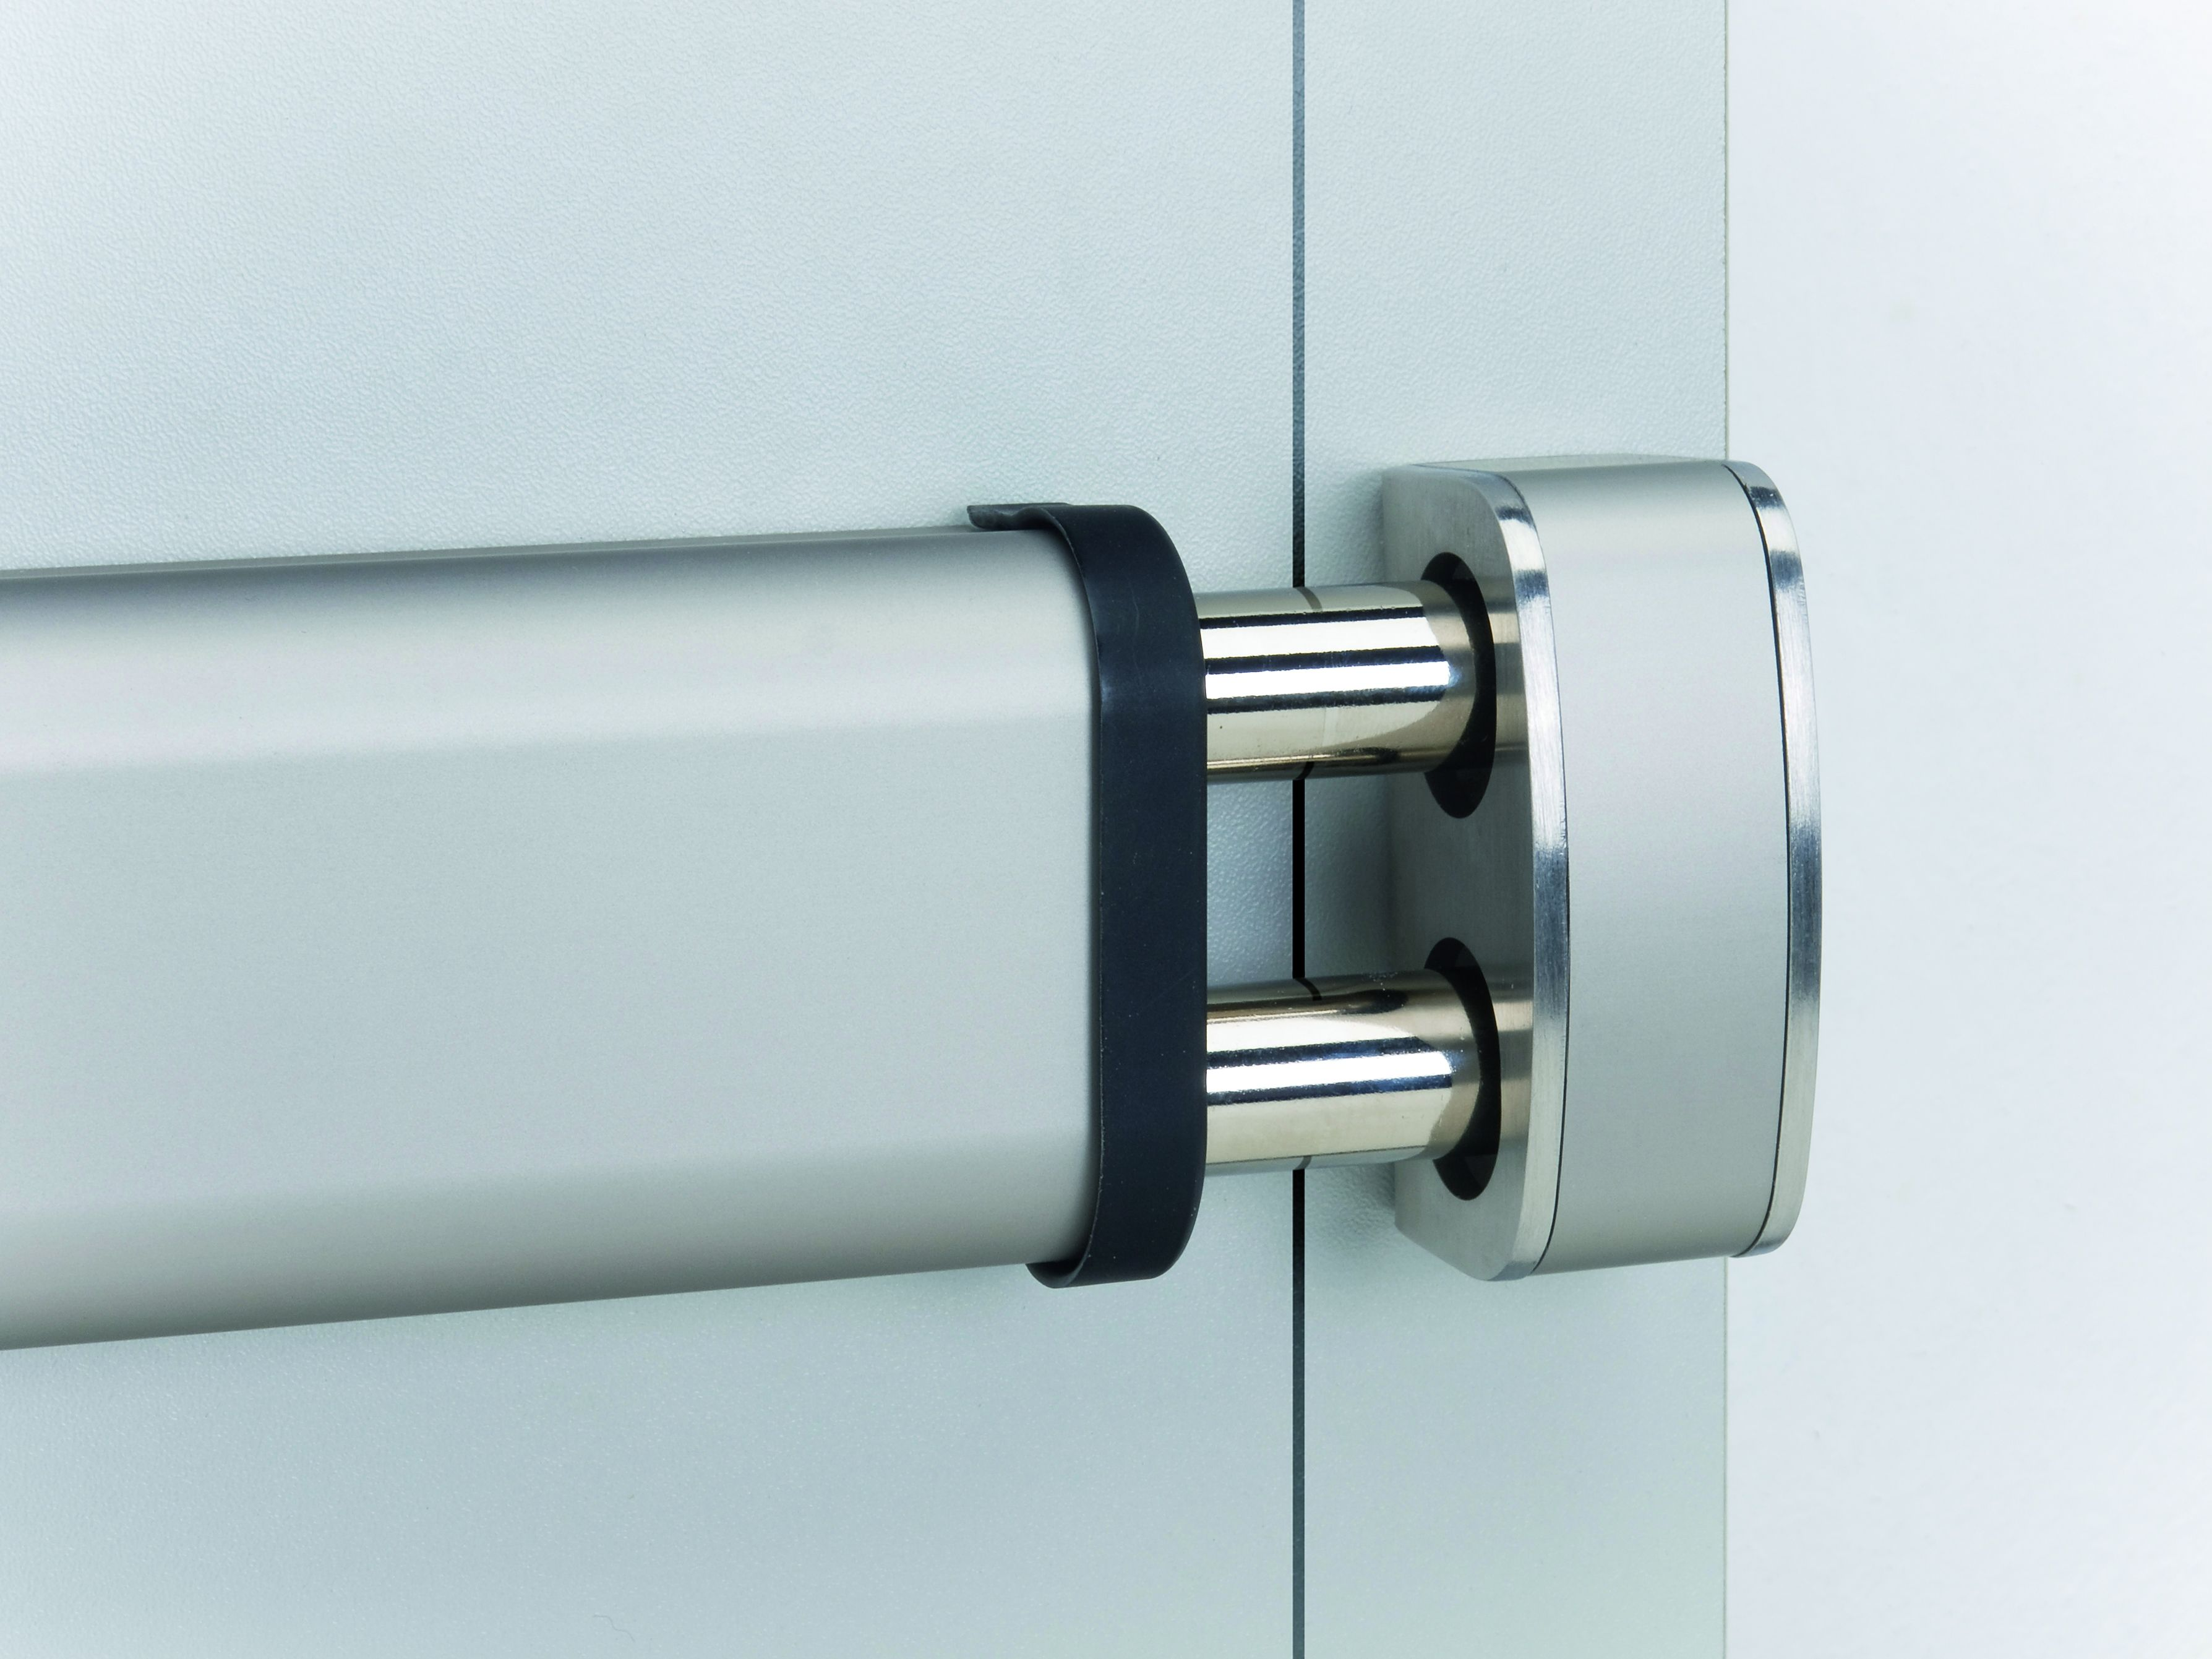 commercial door security bar. Secure Door Locks Bars - A Security Is Great Solution To Incorporate An Additional Element Of Protection For Your Own Commercial Bar O